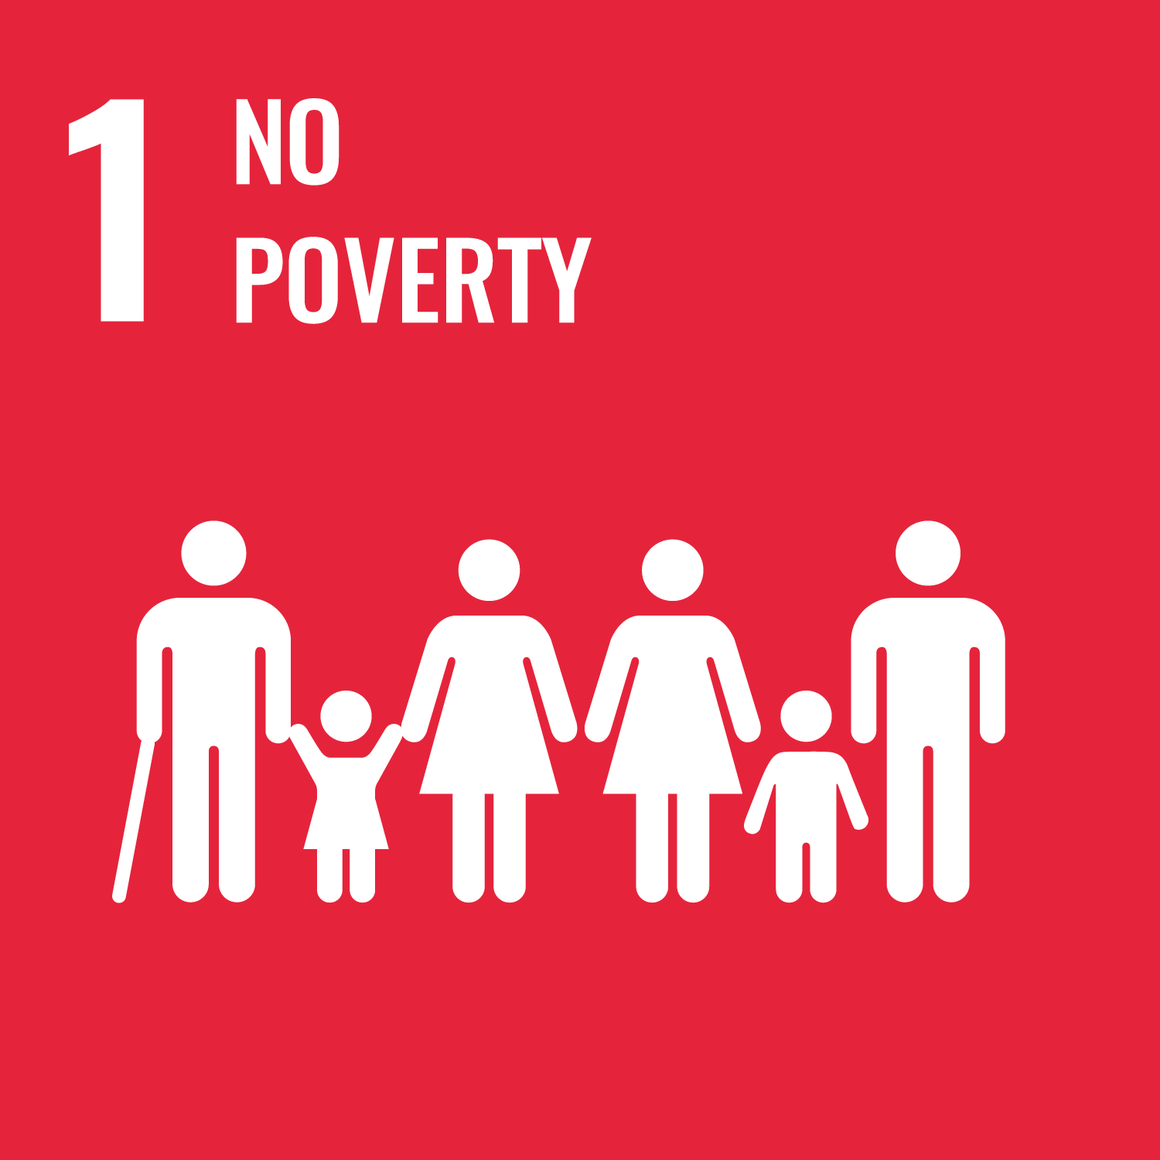 SDG no poverty